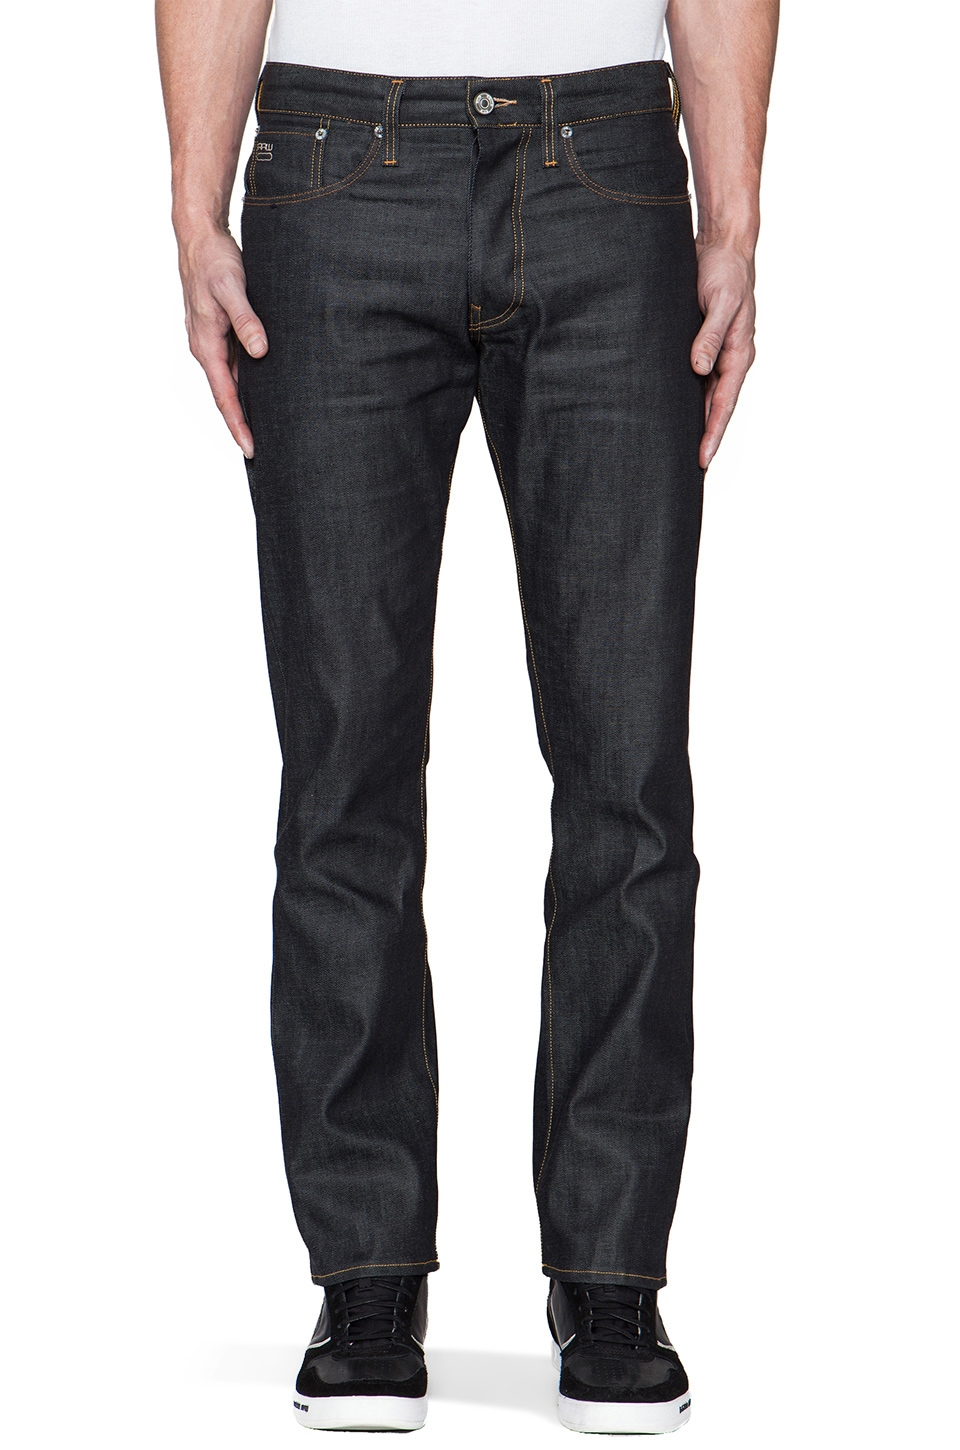 G-Star 3301 Straight in Brooklyn Denim Raw